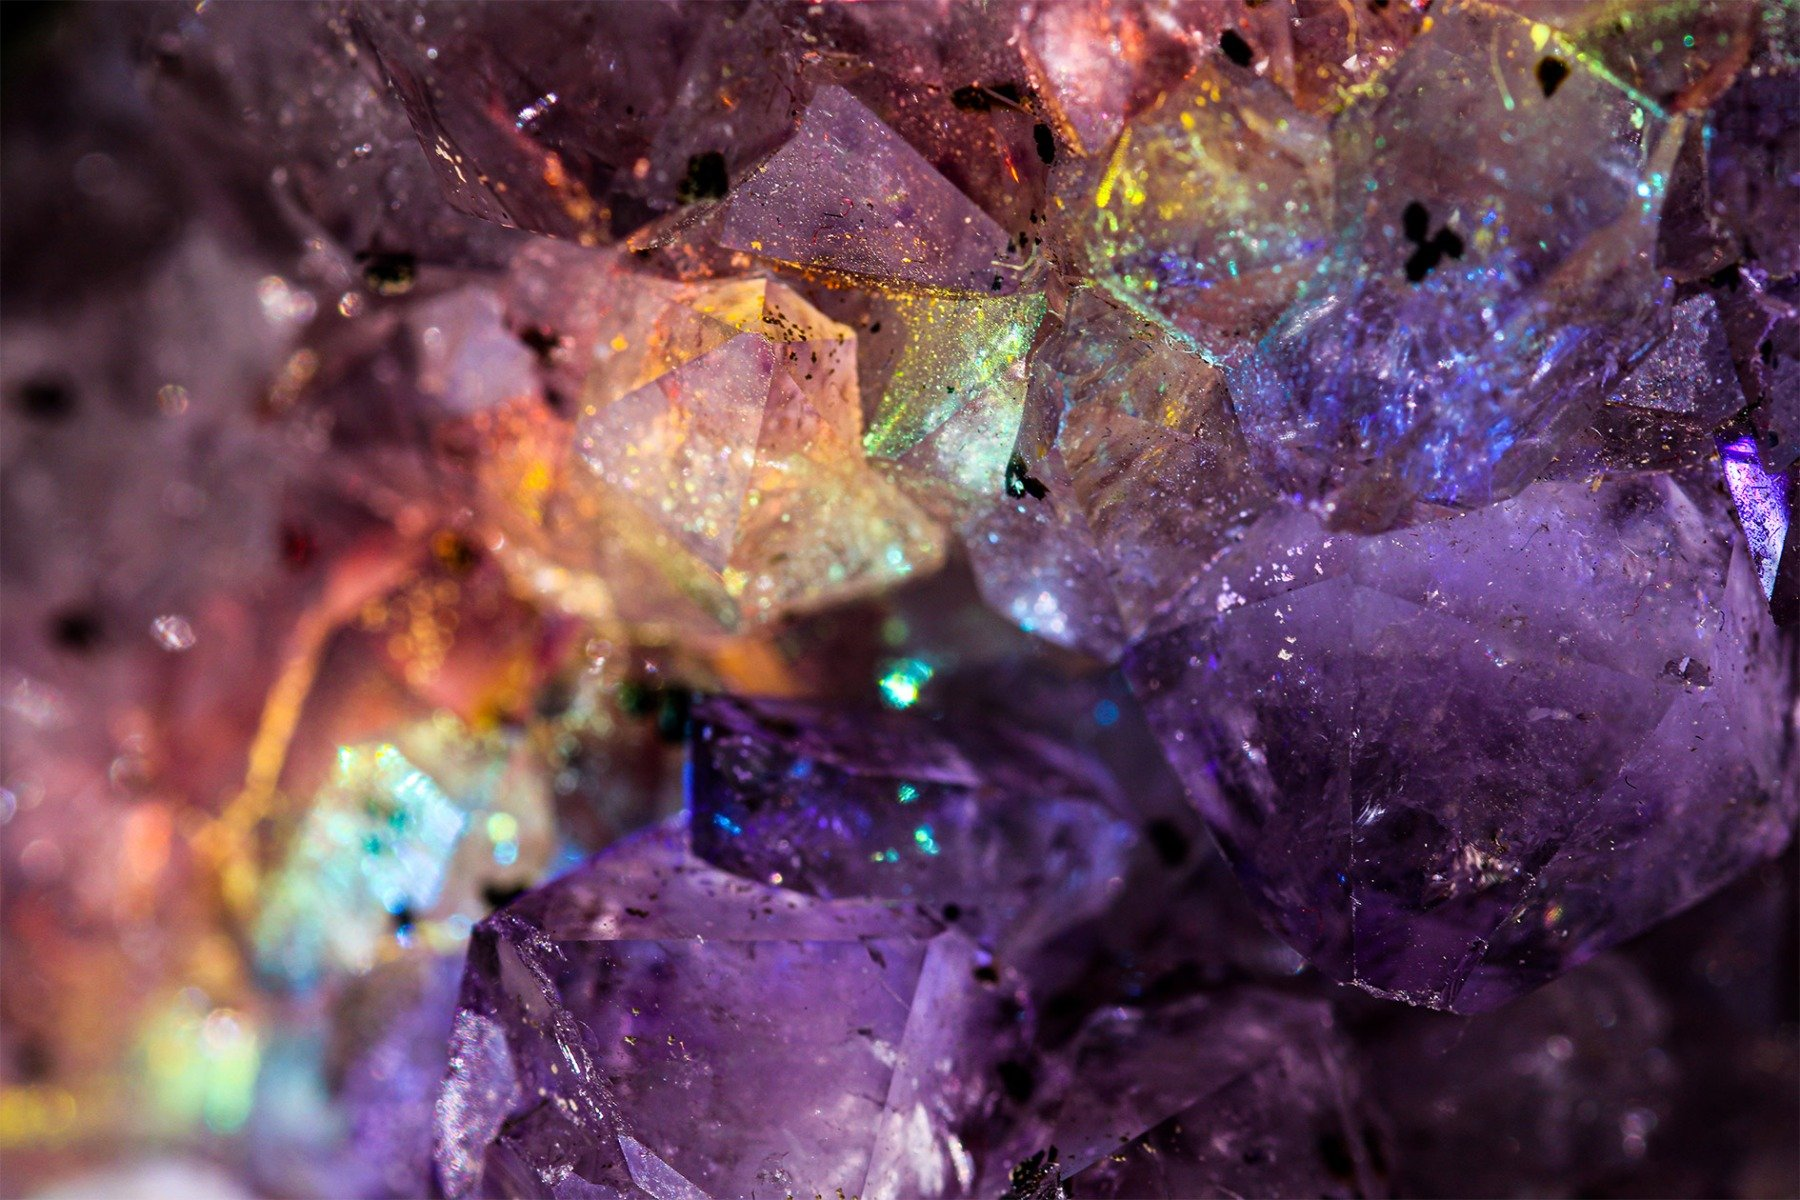 the February birthstone in a geode